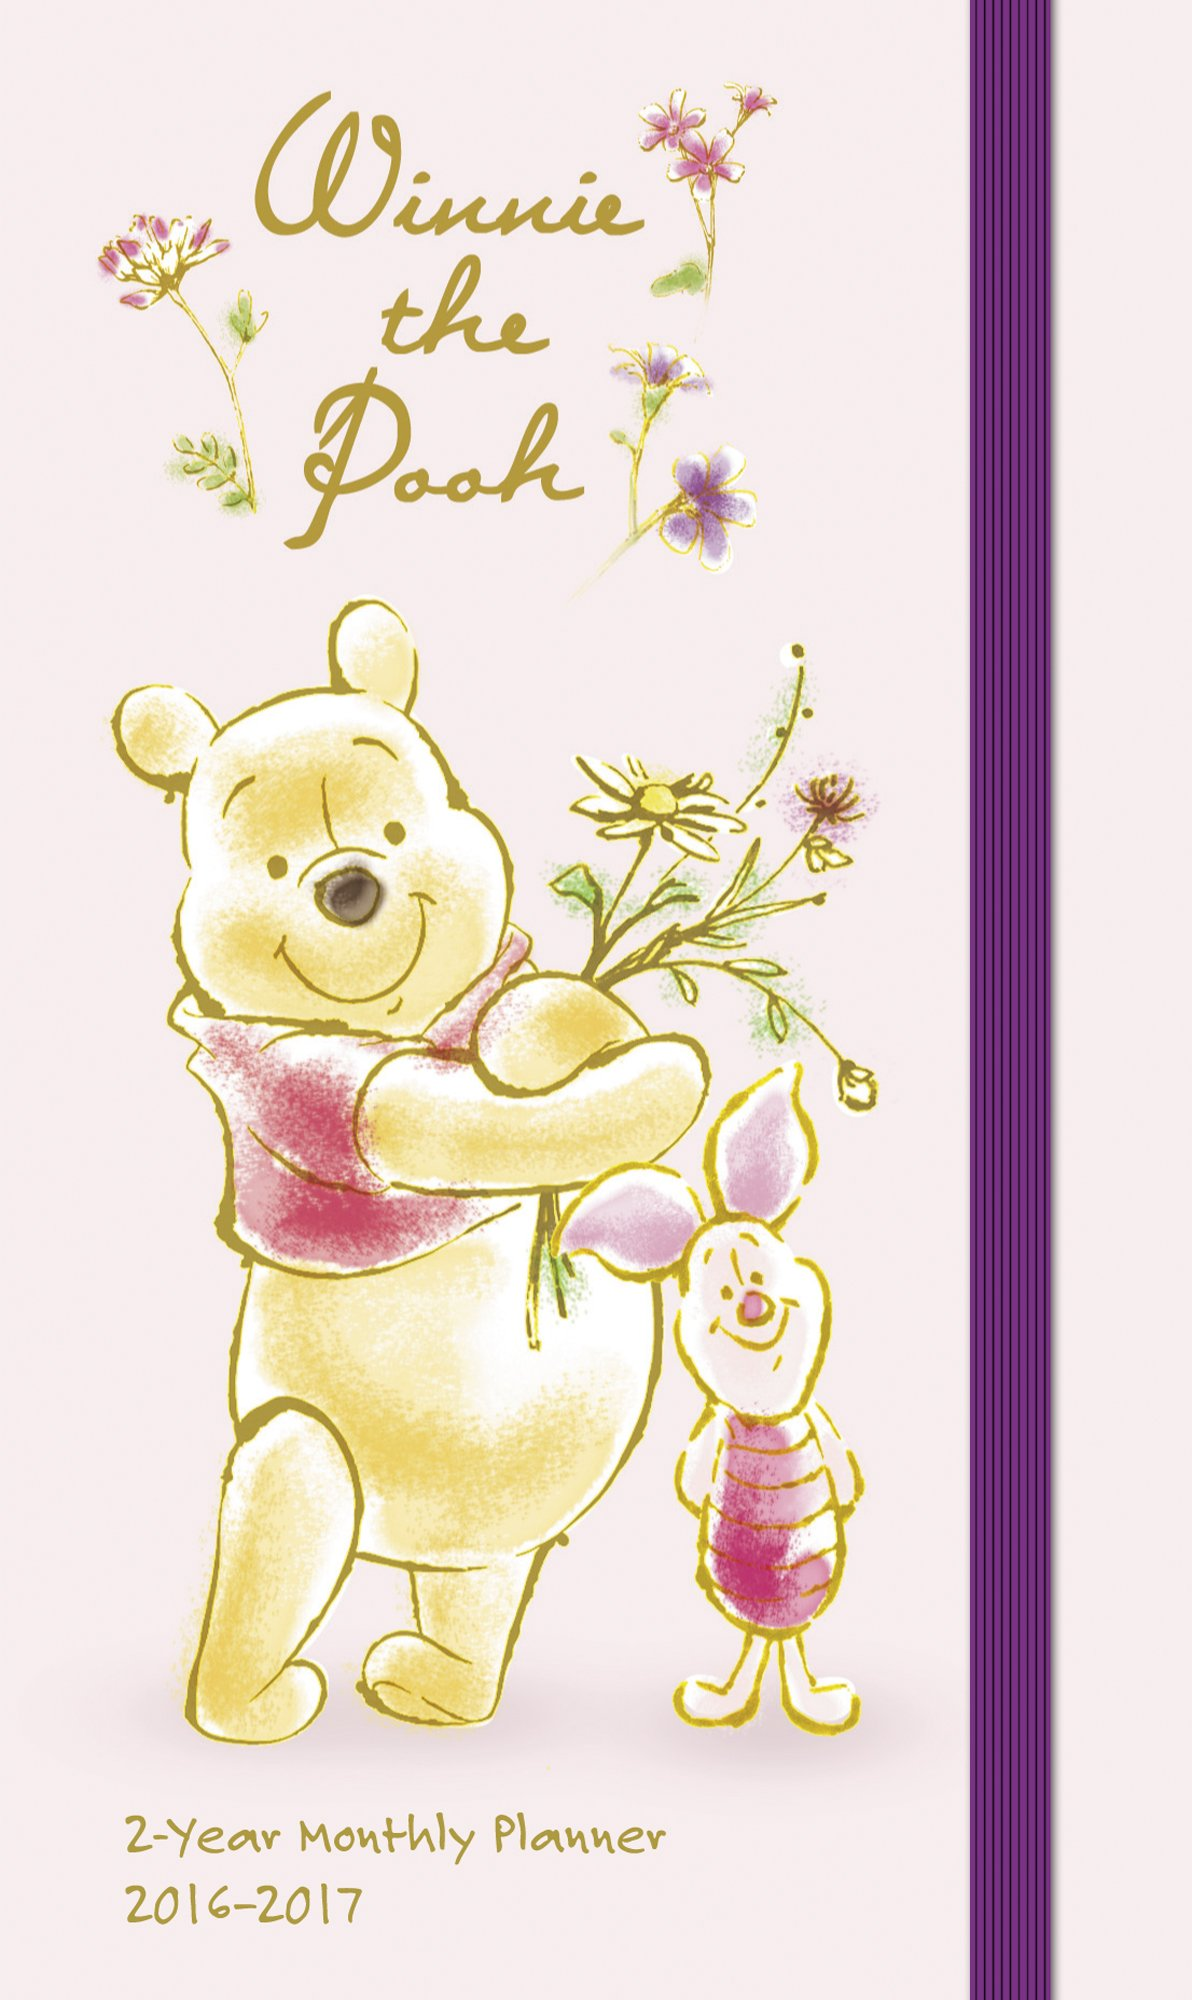 Winnie the Pooh Pocket Planner 2 Year (2016) Calendar – Engagement Calendar, June 17, 2014 Day Dream 162905299X Non-Classifiable